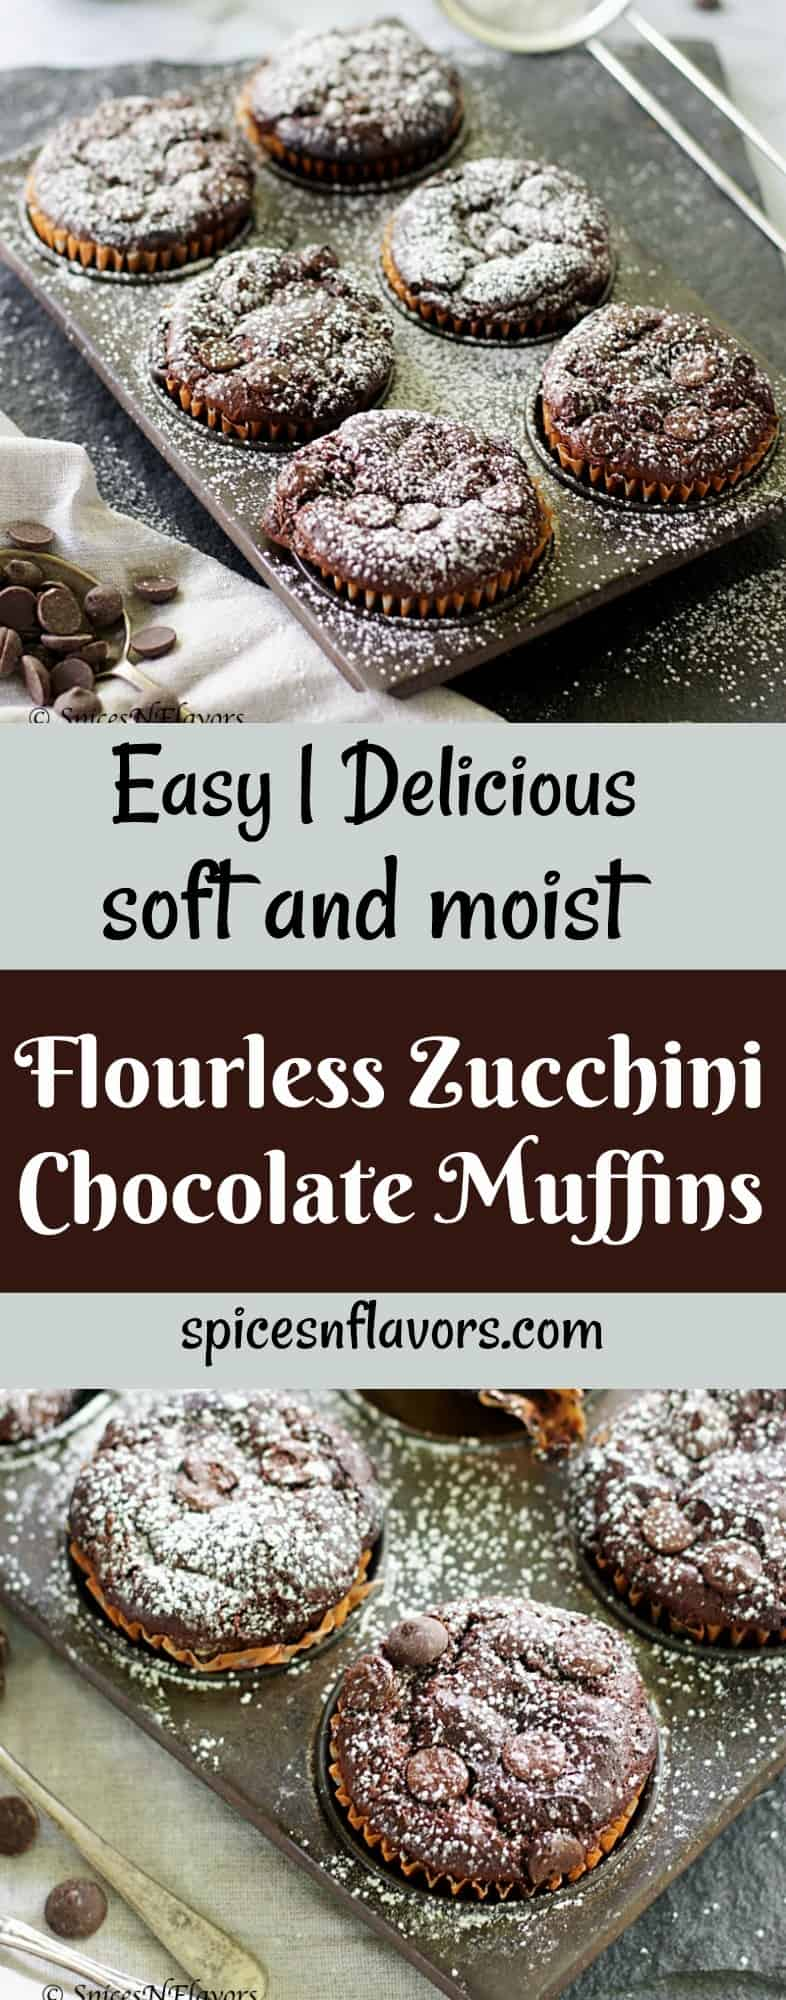 pin image of flourless chocolate zucchini muffins